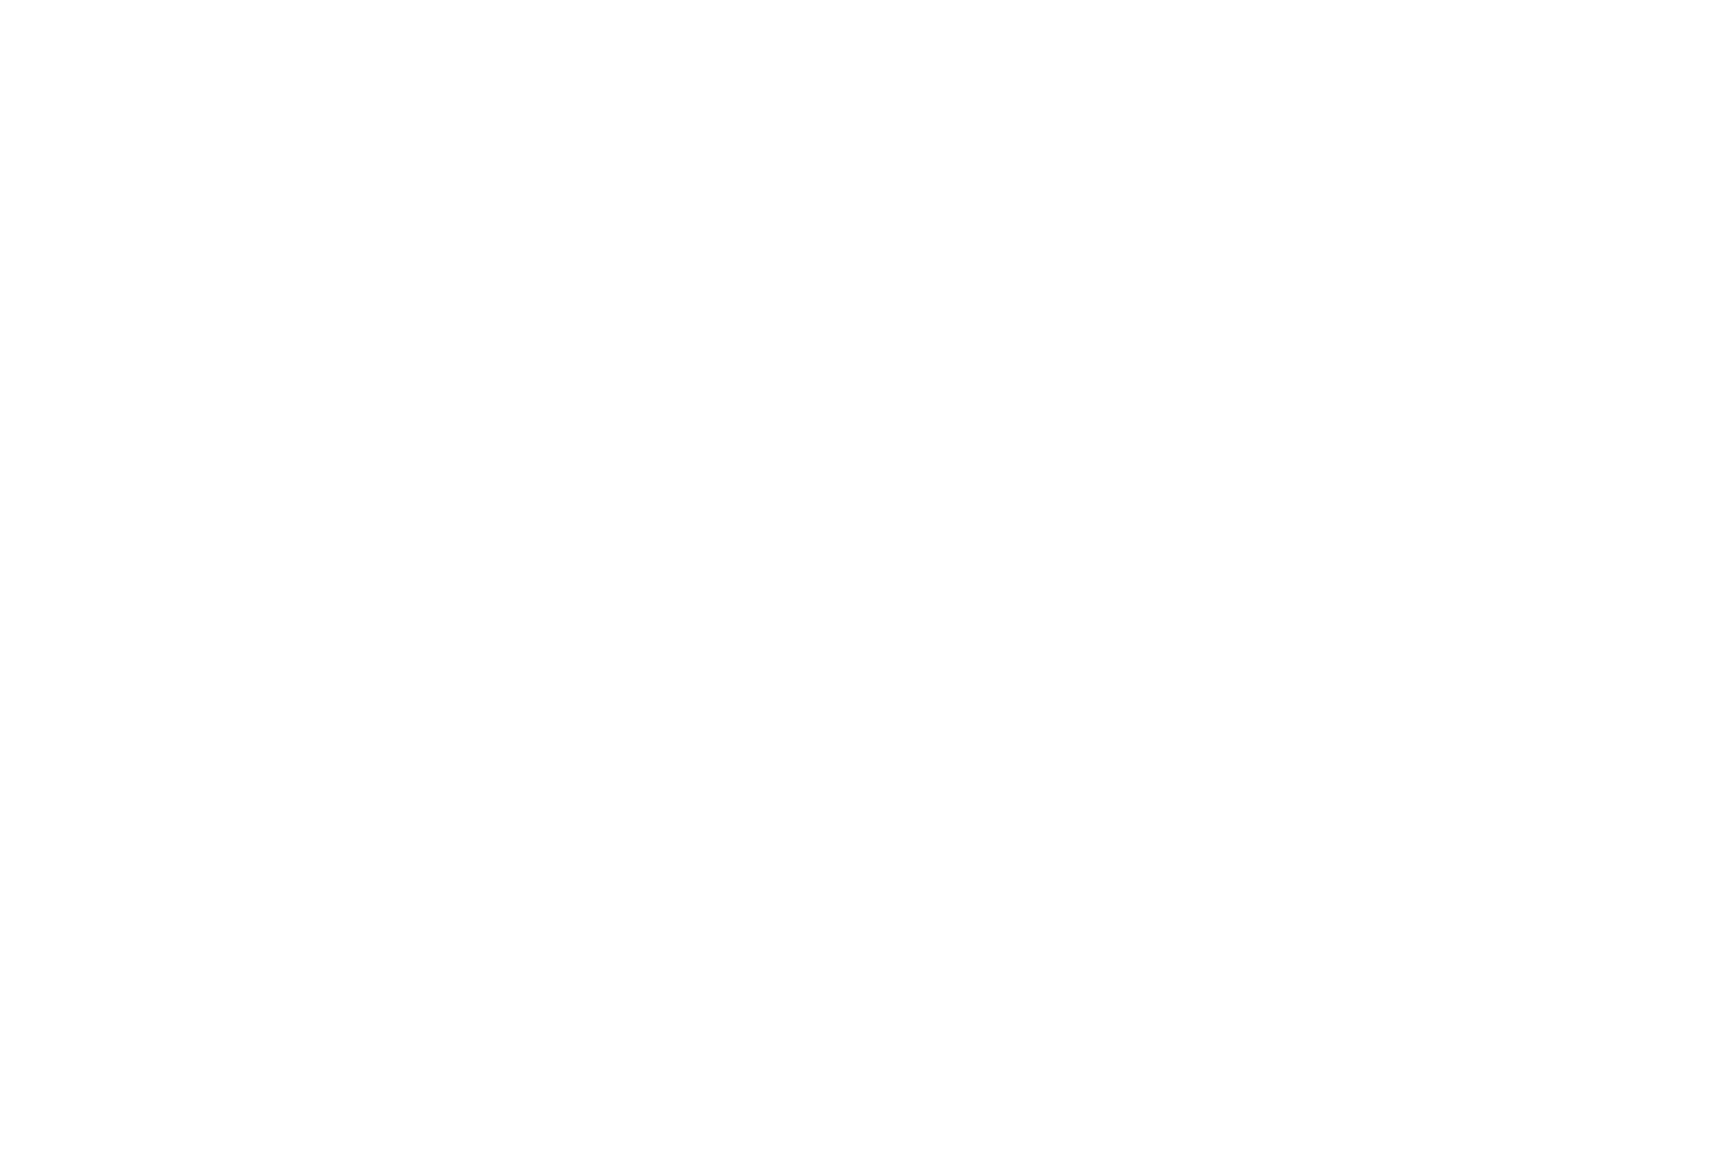 SEMI-FINALIST - ScriptShark Insider Screenplay Competition